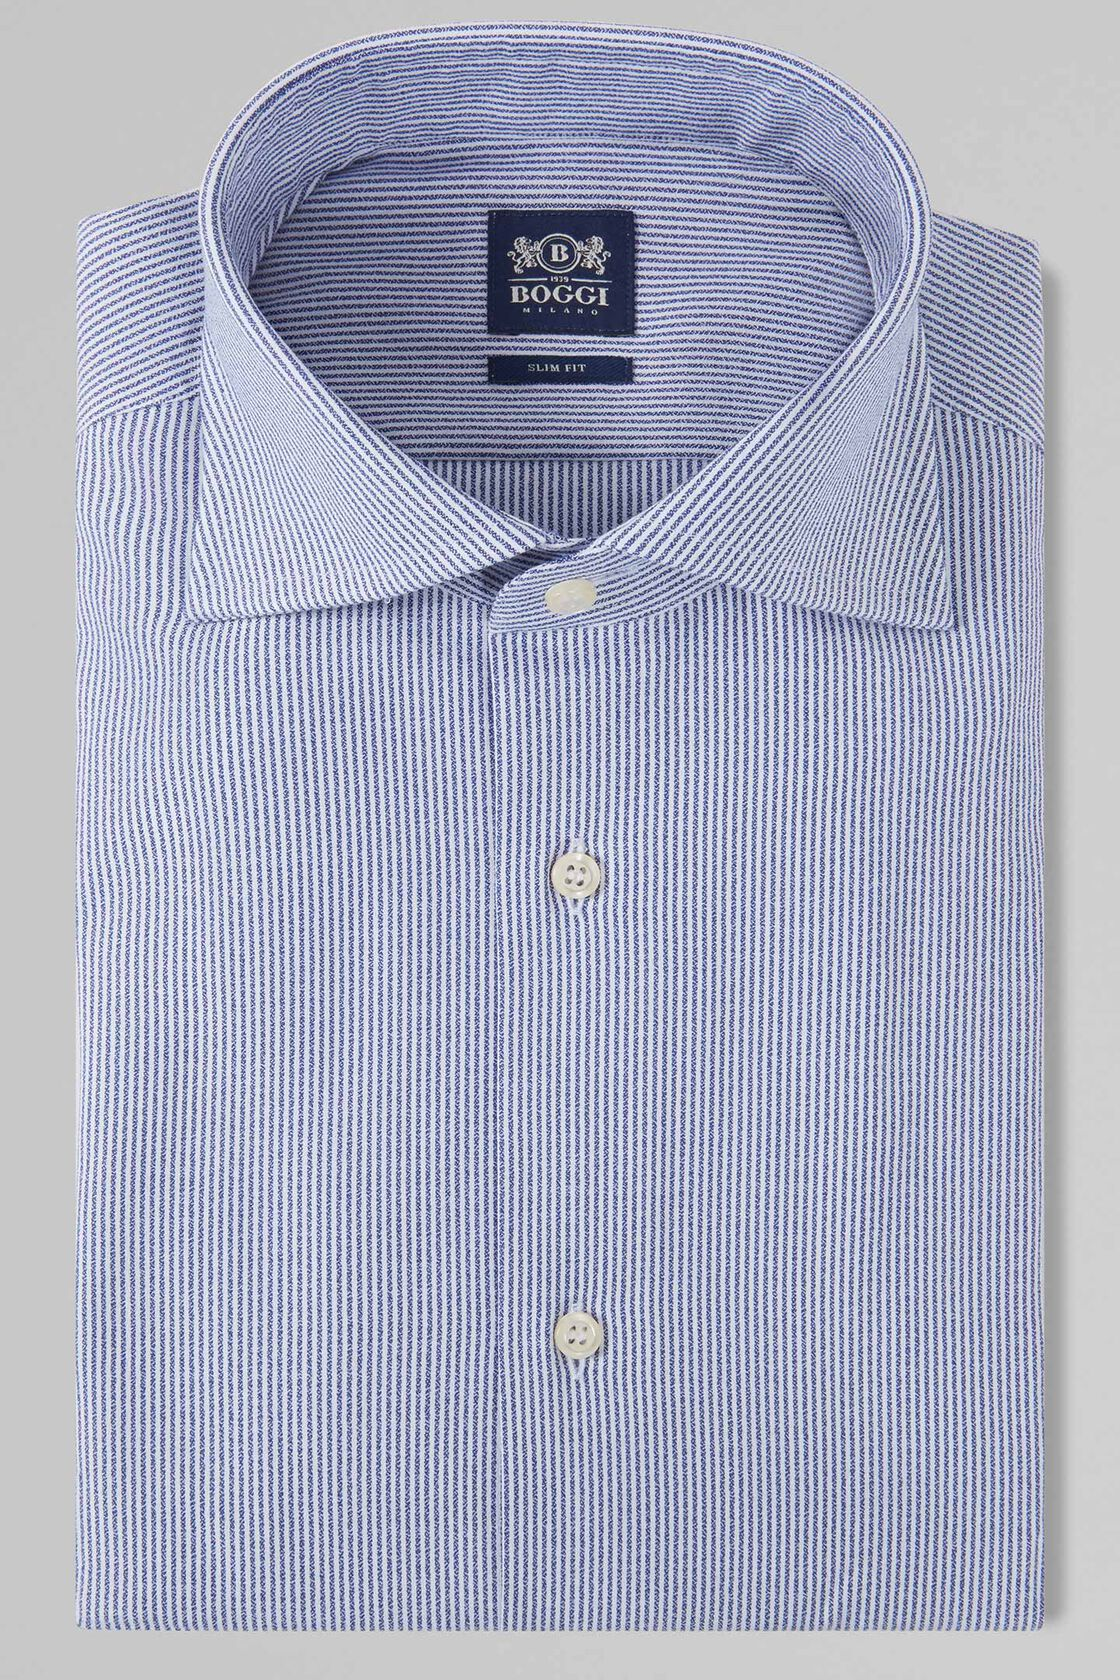 CAMICIA A RIGHE BLU NAVY COLLO WINDSOR SLIM FIT, NAVY, hi-res